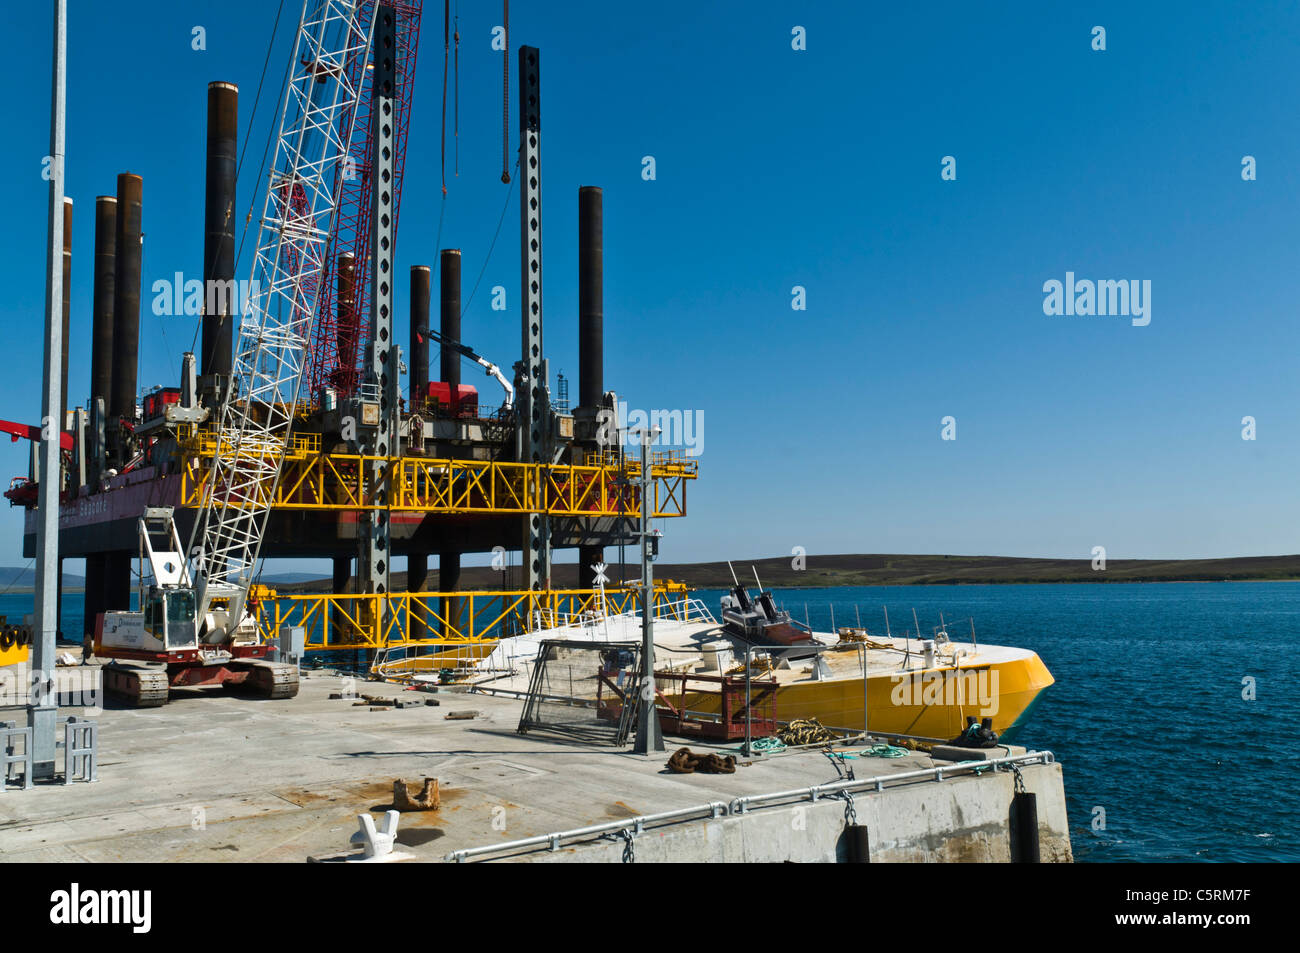 dh Lyness Pier HOY ORKNEY Wellos Penguin and Fugro Seacore positioning platform rig at pier scotland - Stock Image